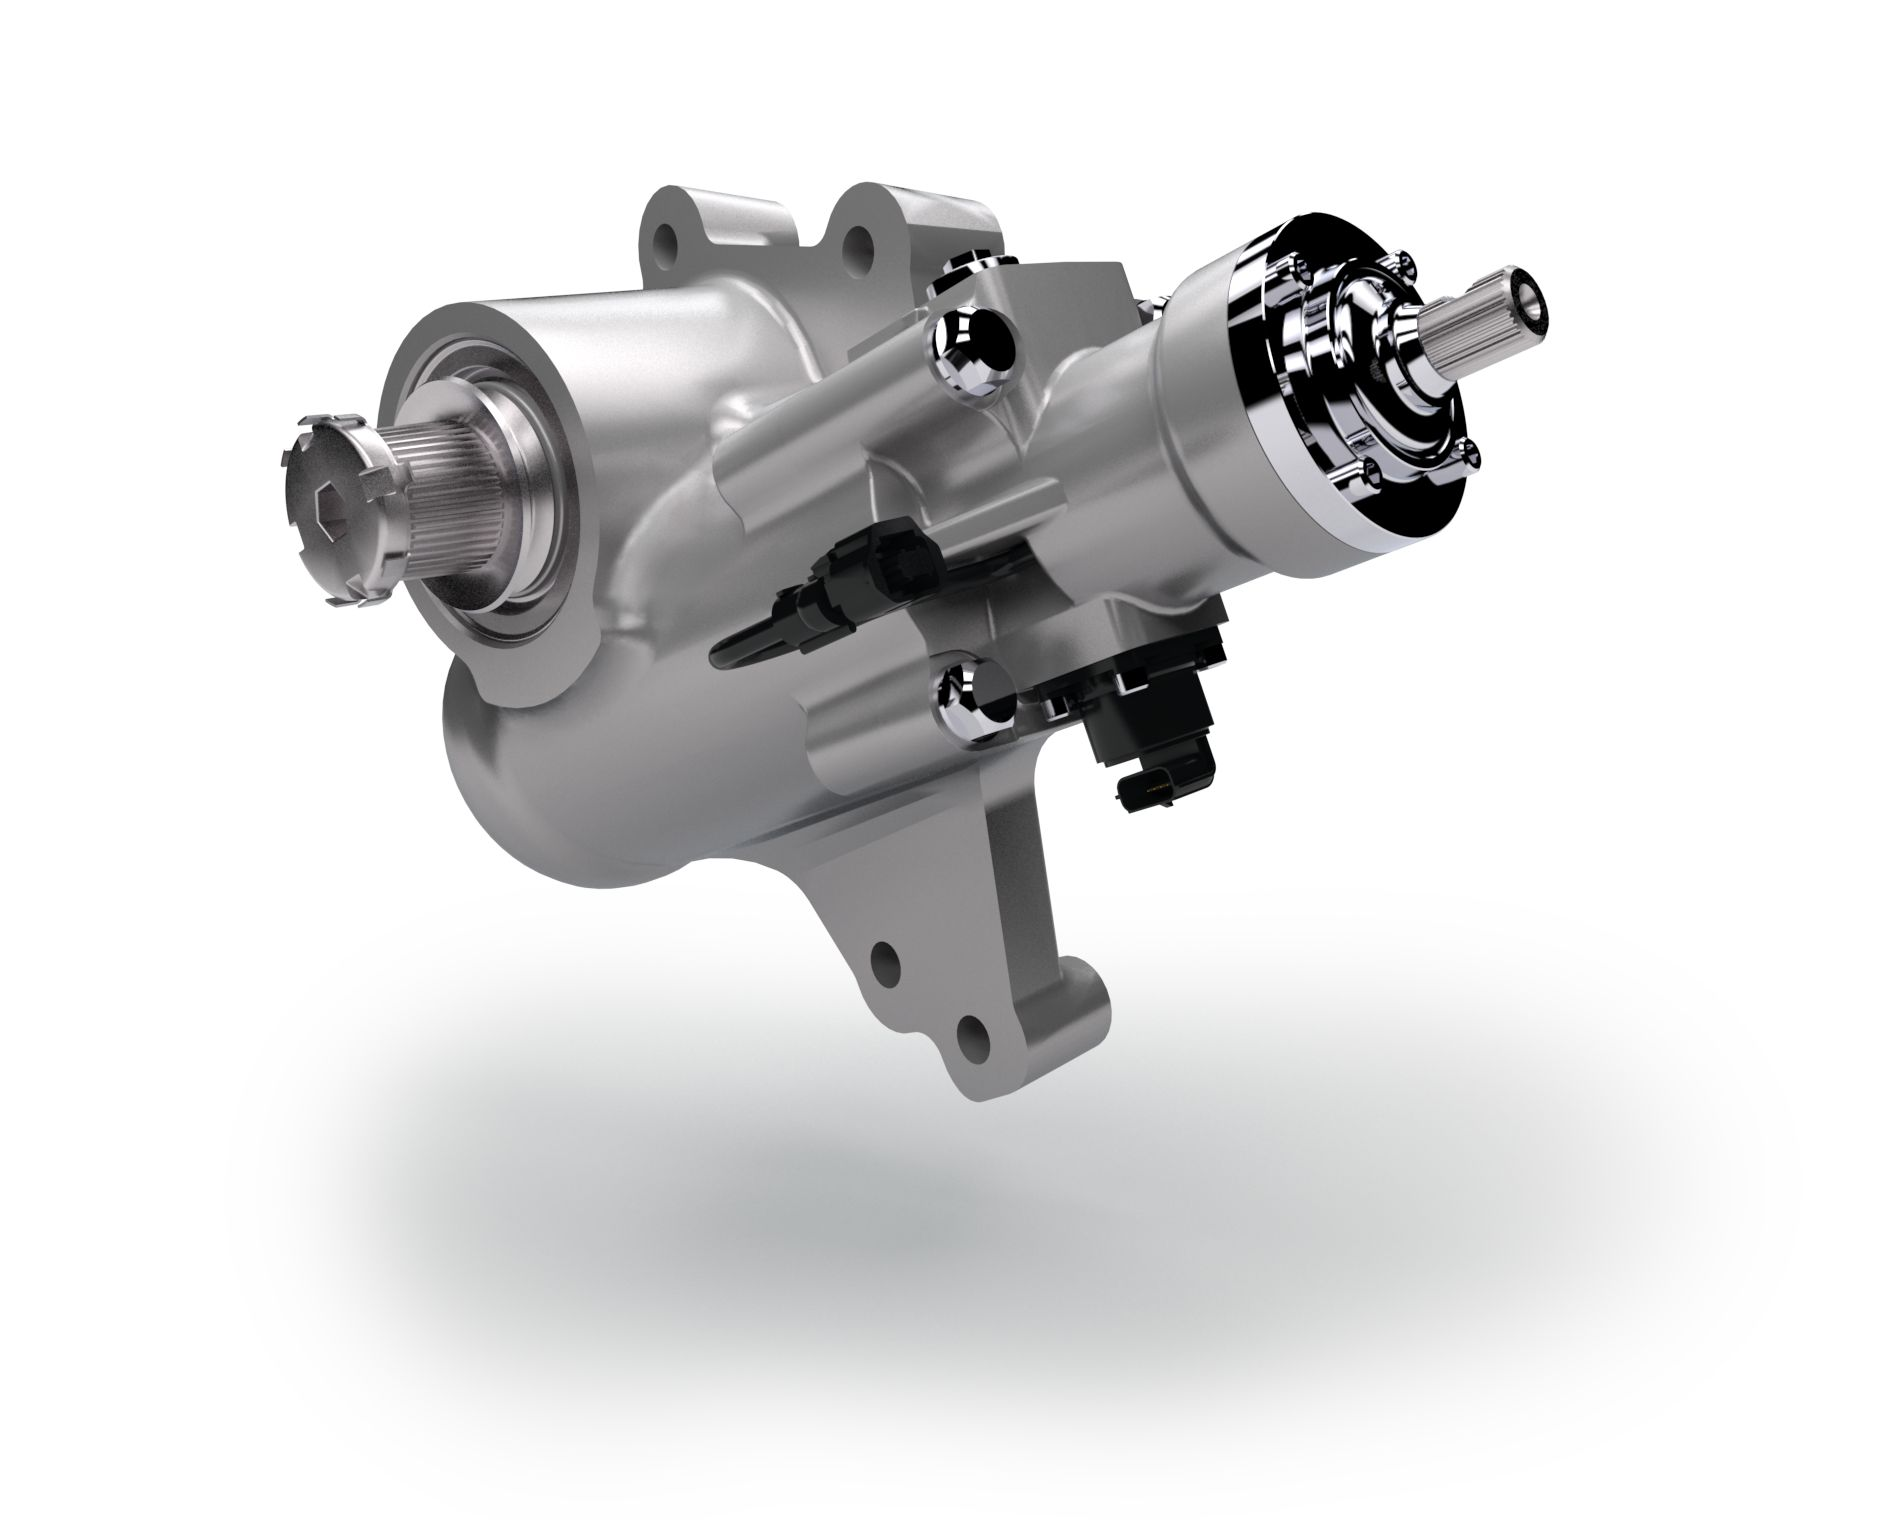 OnLaneASSIST features innovative lane correction based on a hydraulic steering gear